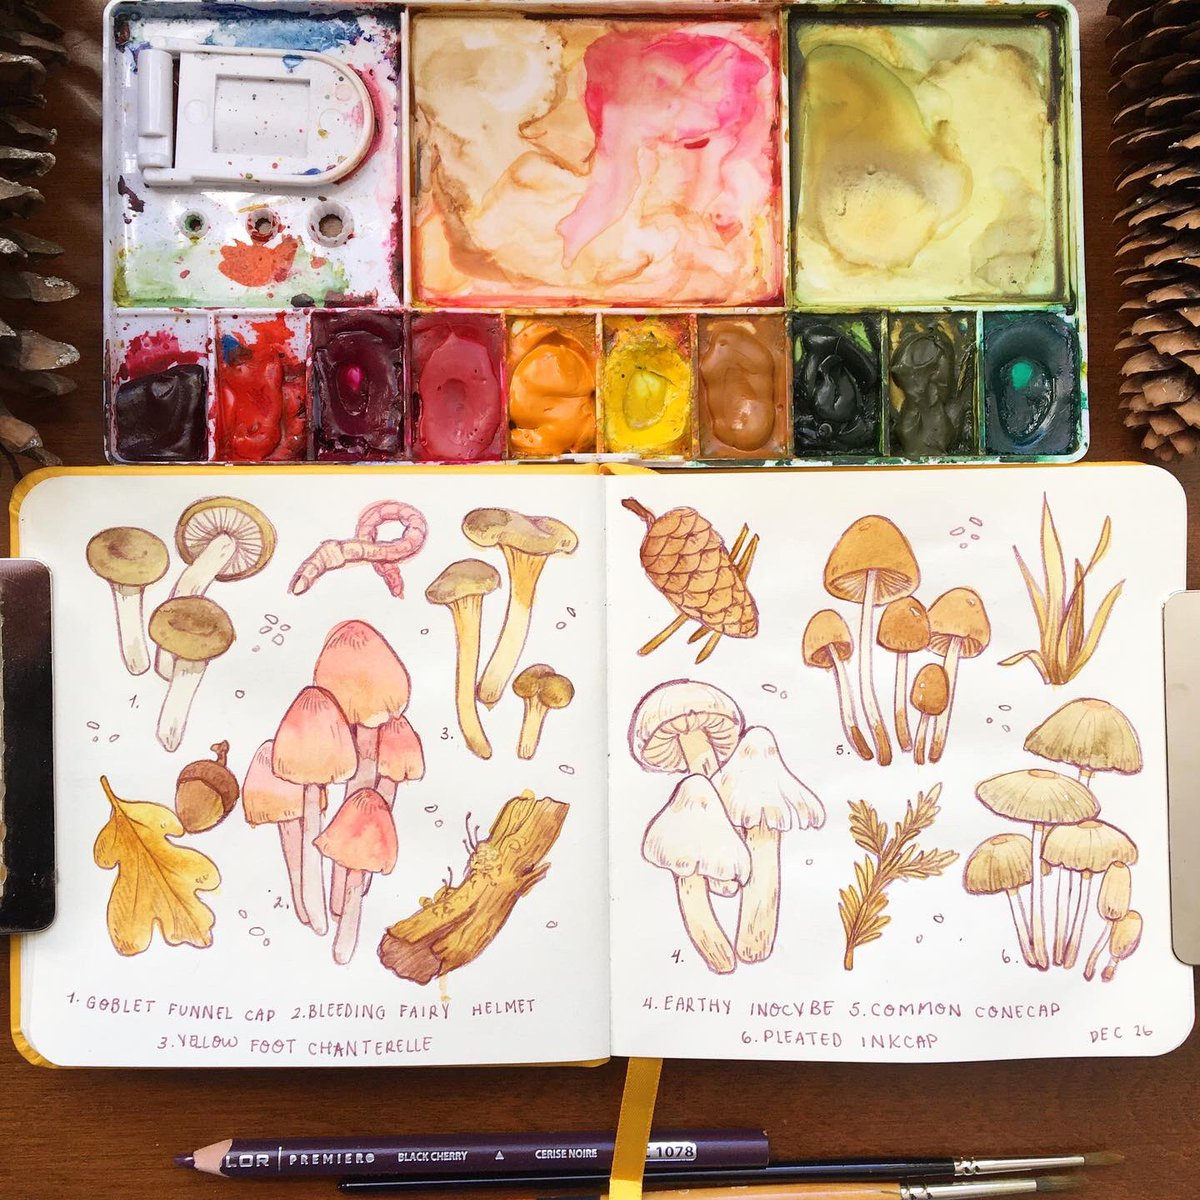 Replying to @loonpflug: been doodling in my sketchbook a lot these days and all i can seem to draw is mushrooms 🌿✨